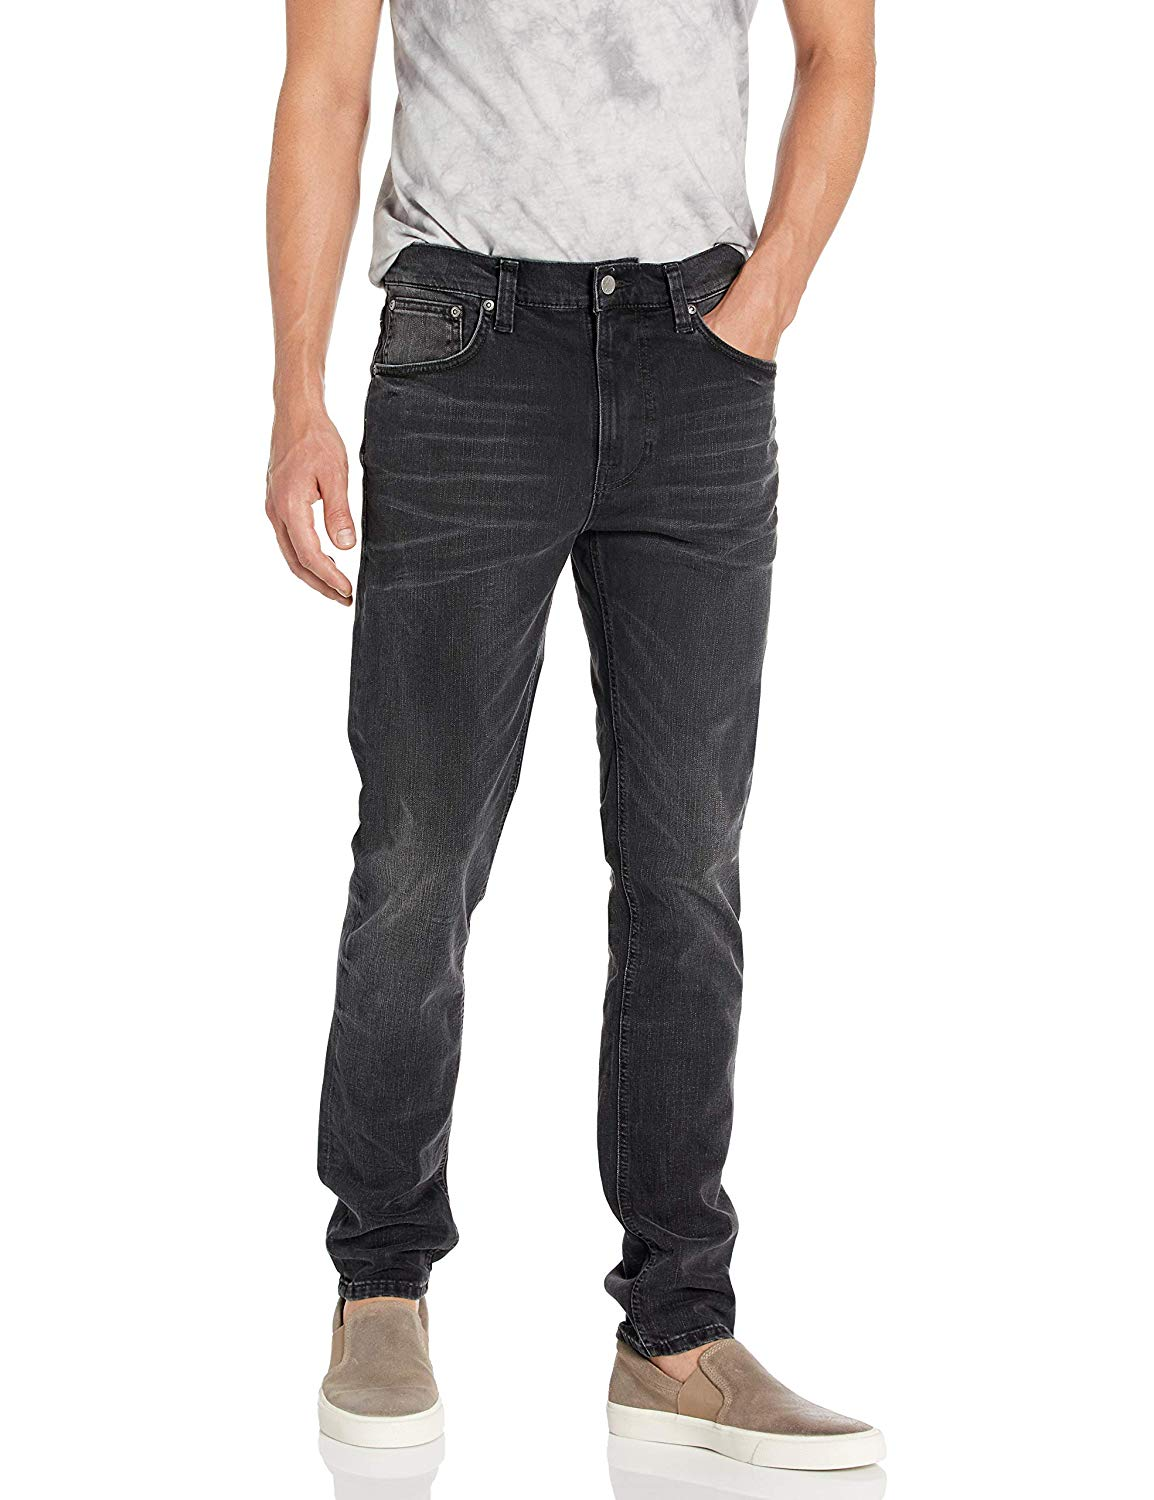 NUDIE JEANS LEAN DEAN MEN'S JEANS 112880